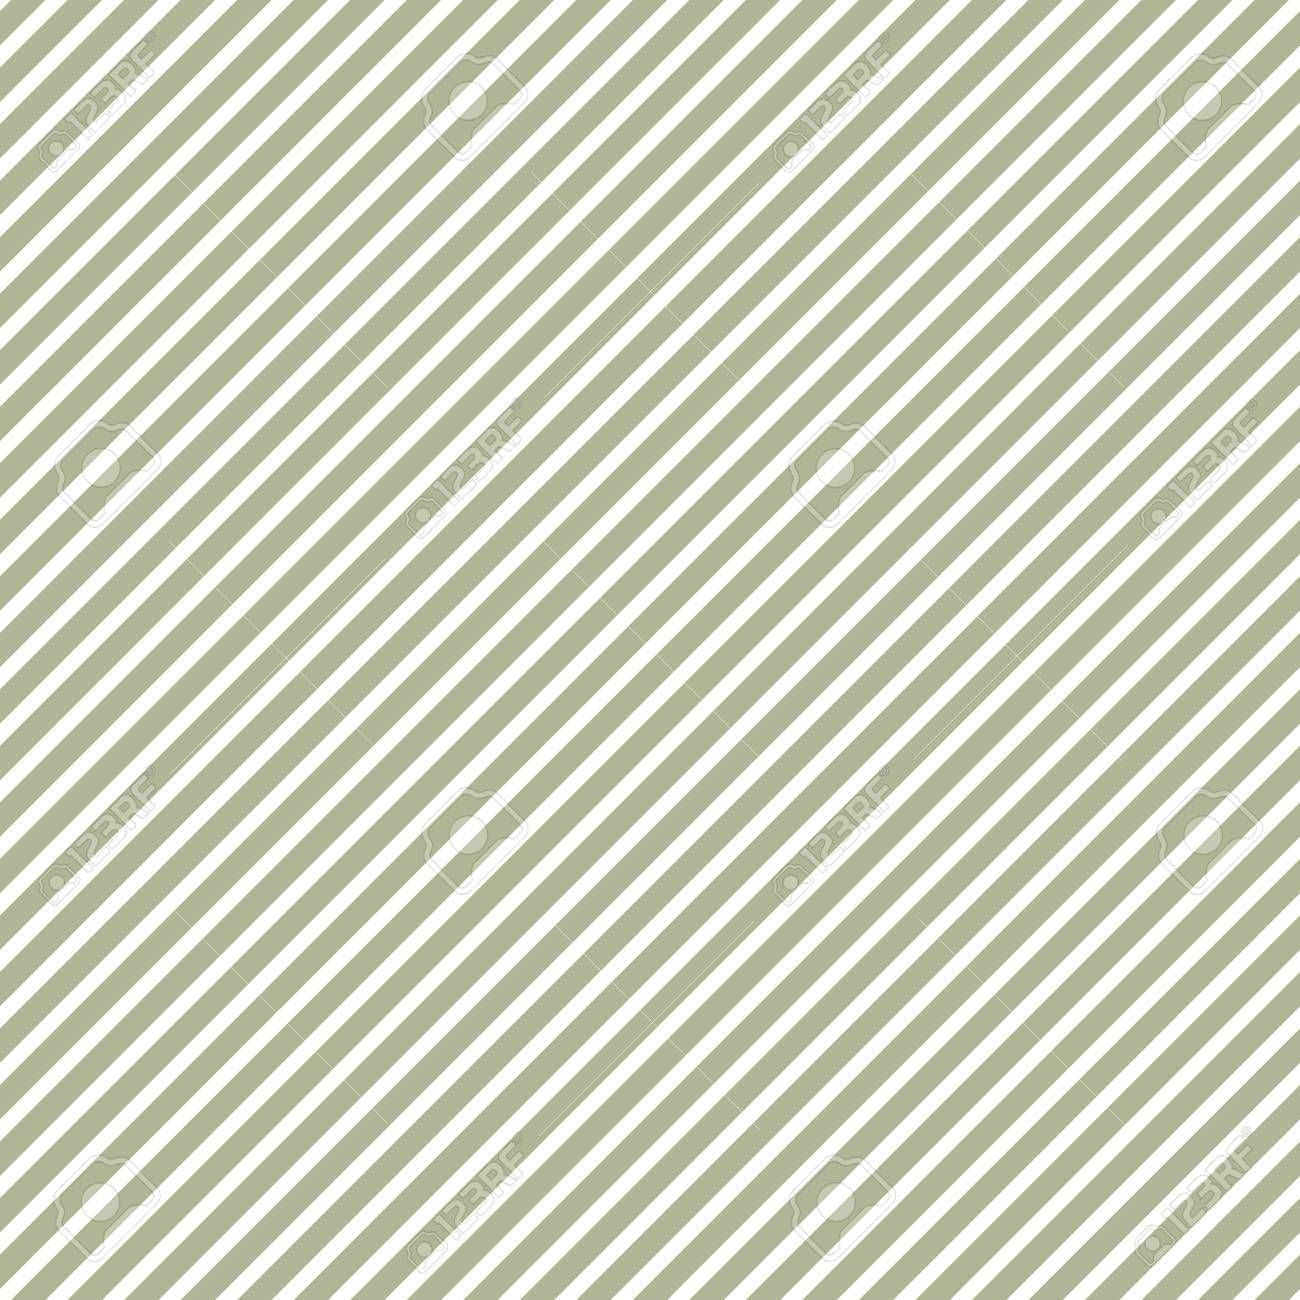 Diagonal Stripes Pattern Geometric Simple Background Creative And Elegant Style Illustration Sponsored Affiliate Geometric Simple Pattern Diagonal In 2020